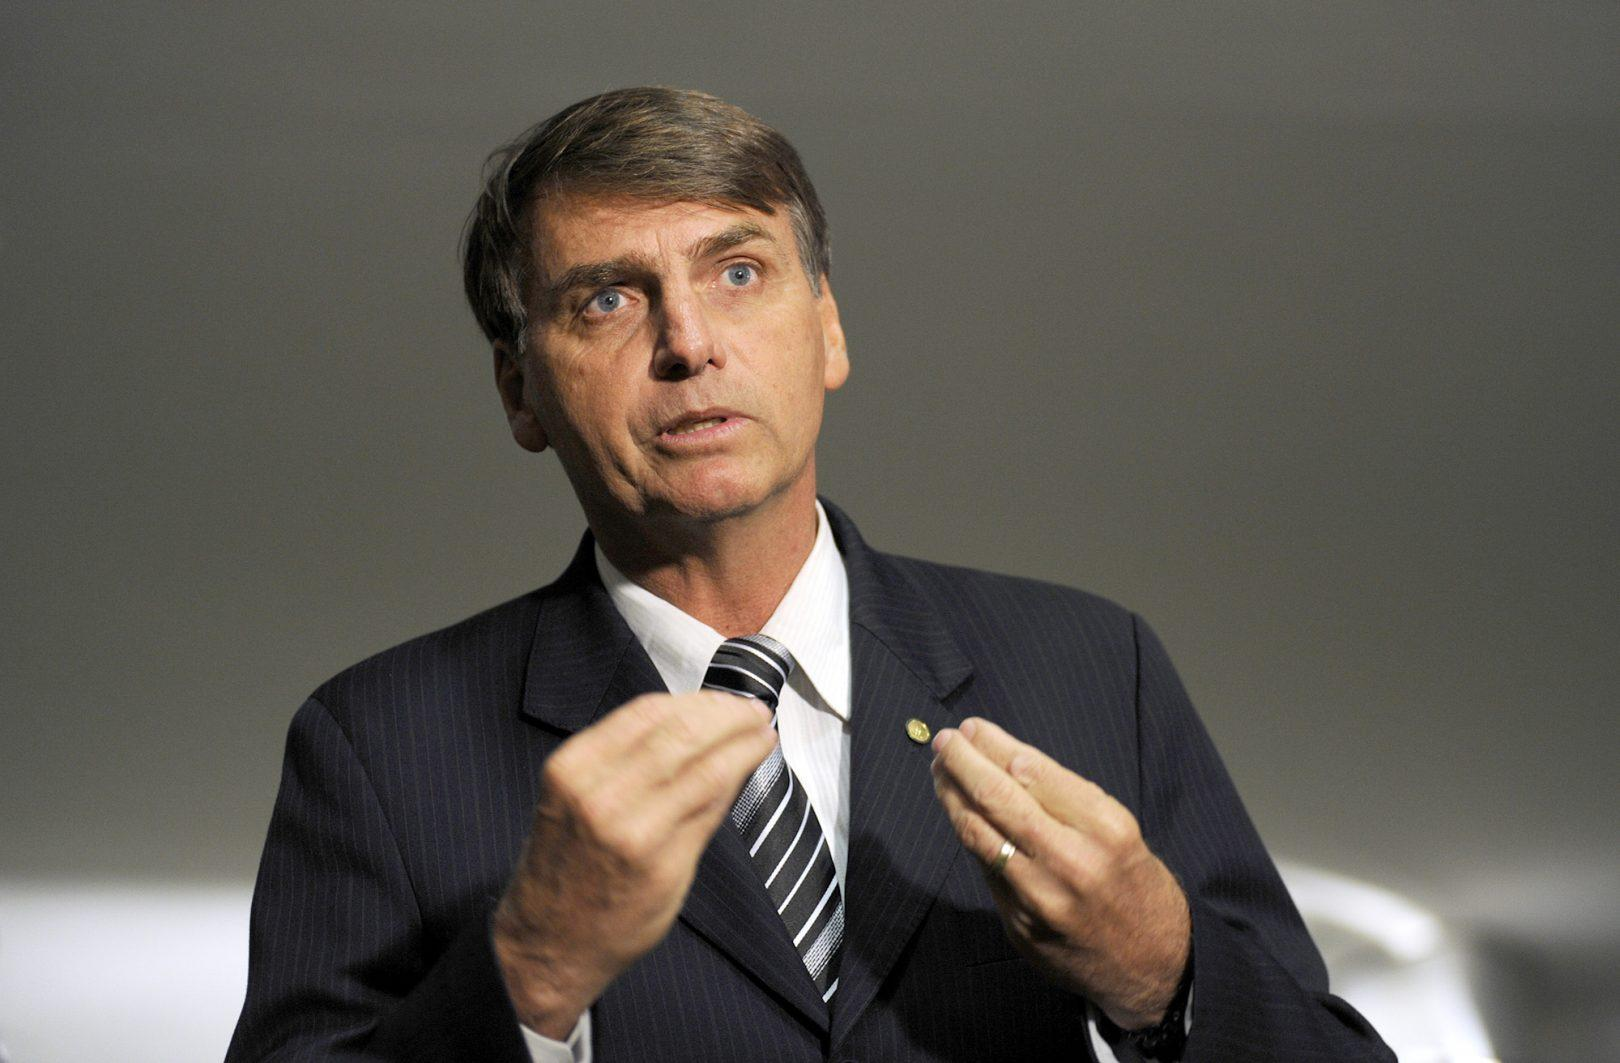 Bolsonaro promises an end  to crime in Brazil, and Brazilians may be ready to welcome it by any means necessary (JANINE MORAES/CHAMBER OF DEPUTIES OF BRAZIL VIA WIKIMEDIA COMMONS)